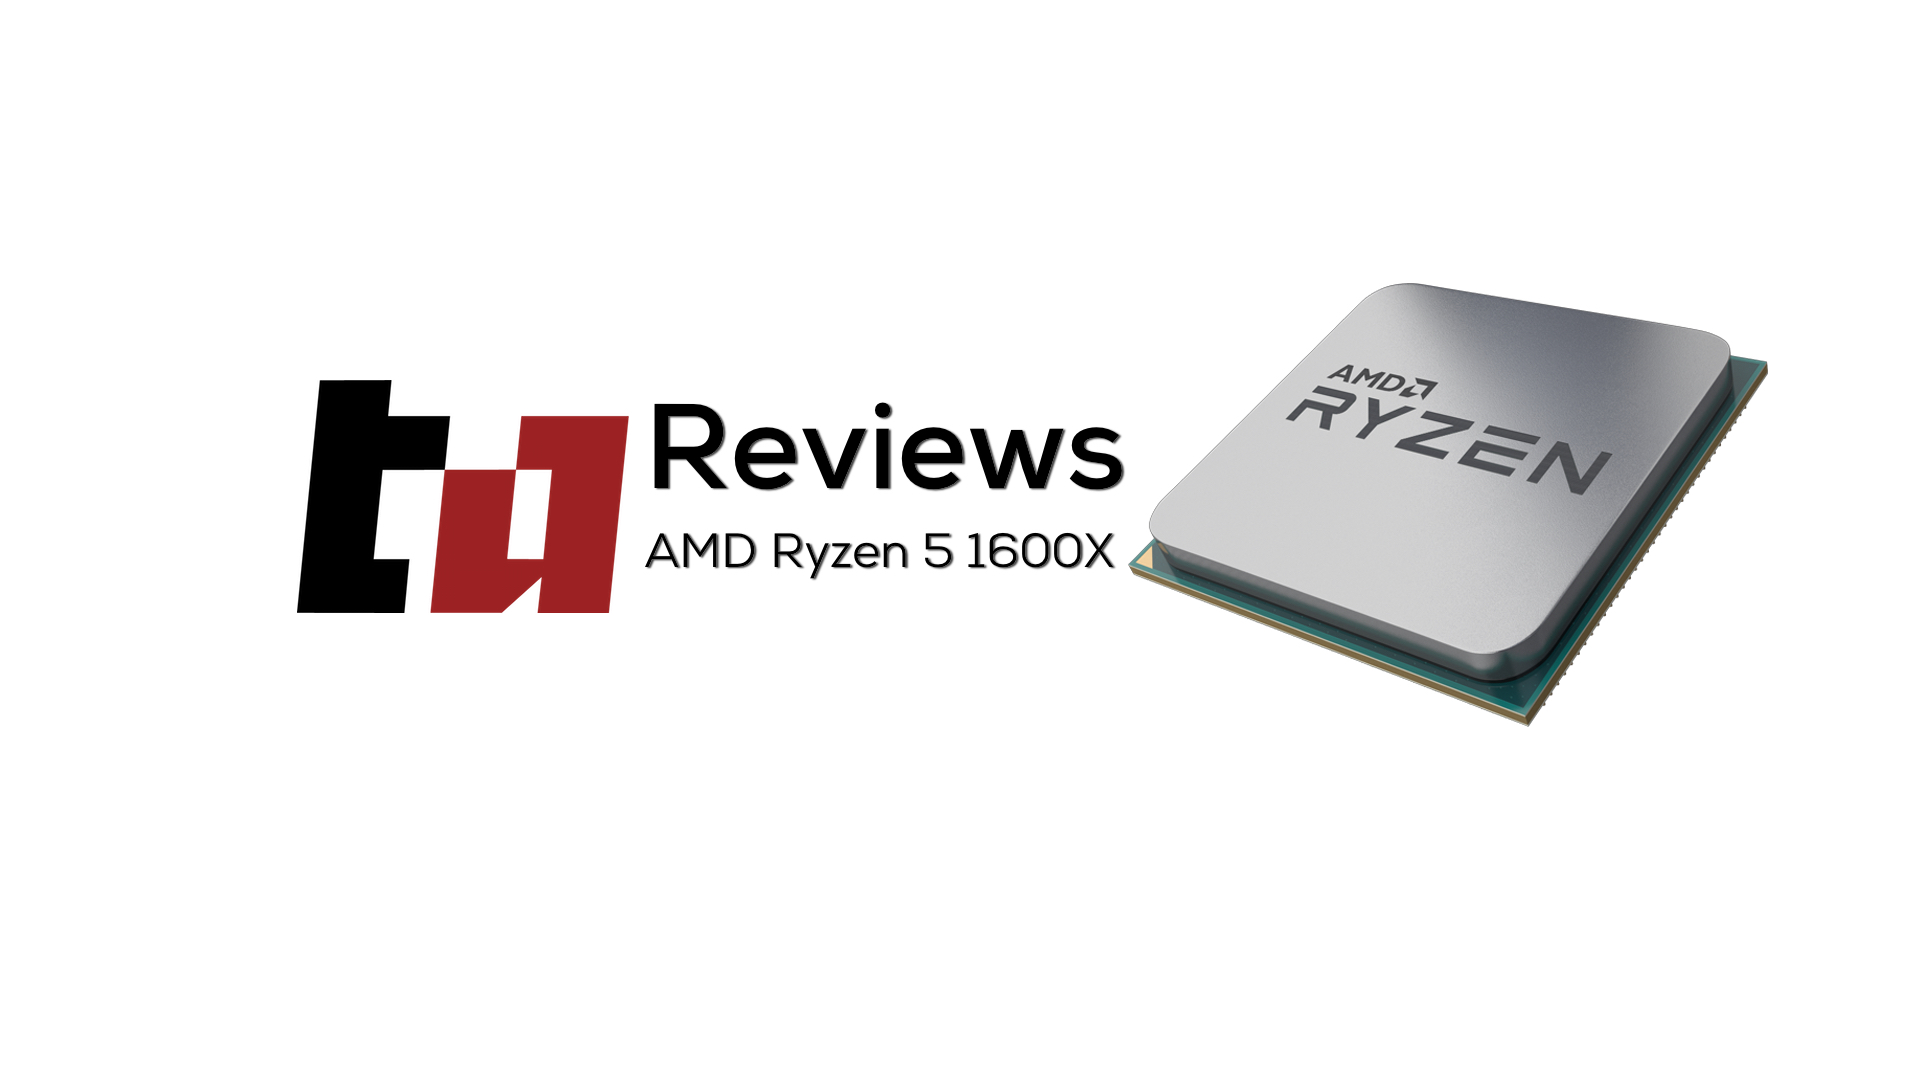 AMD Ryzen 5 1600X Review, the new king of mid-range? - Tech Altar